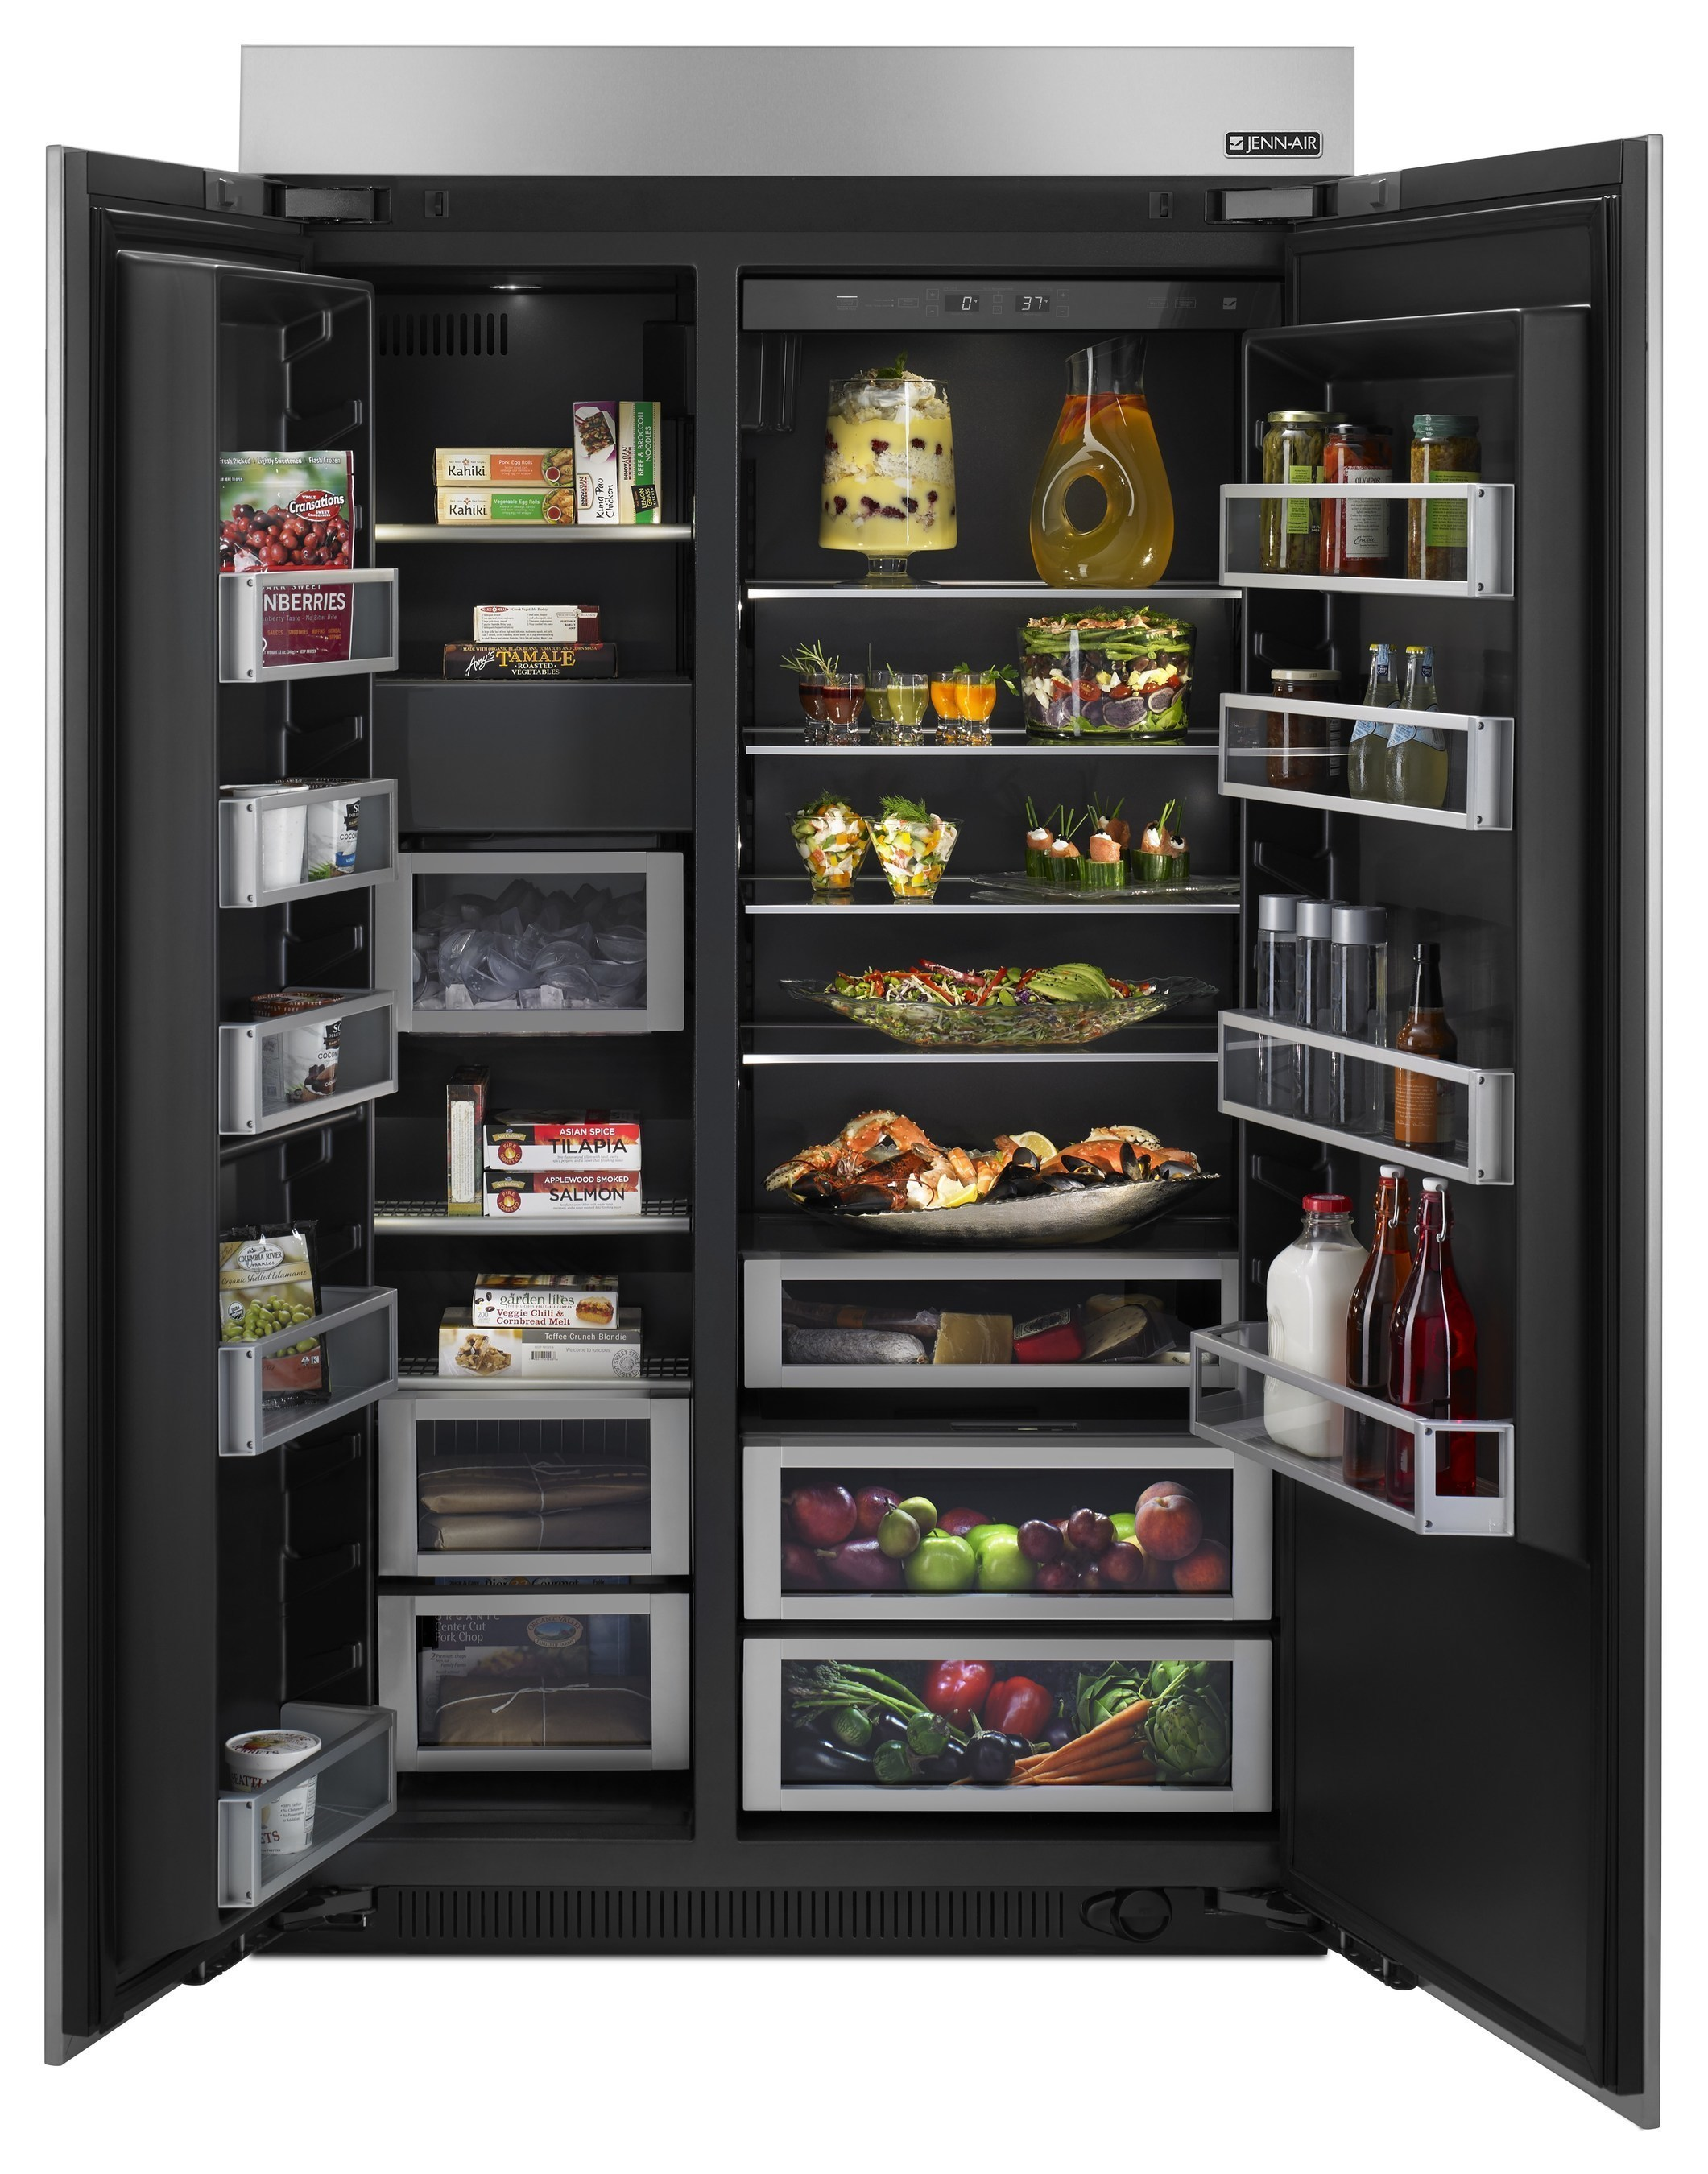 Jenn Air 48 Inch Slide In Side By Refrigerator With Obsidian Interior